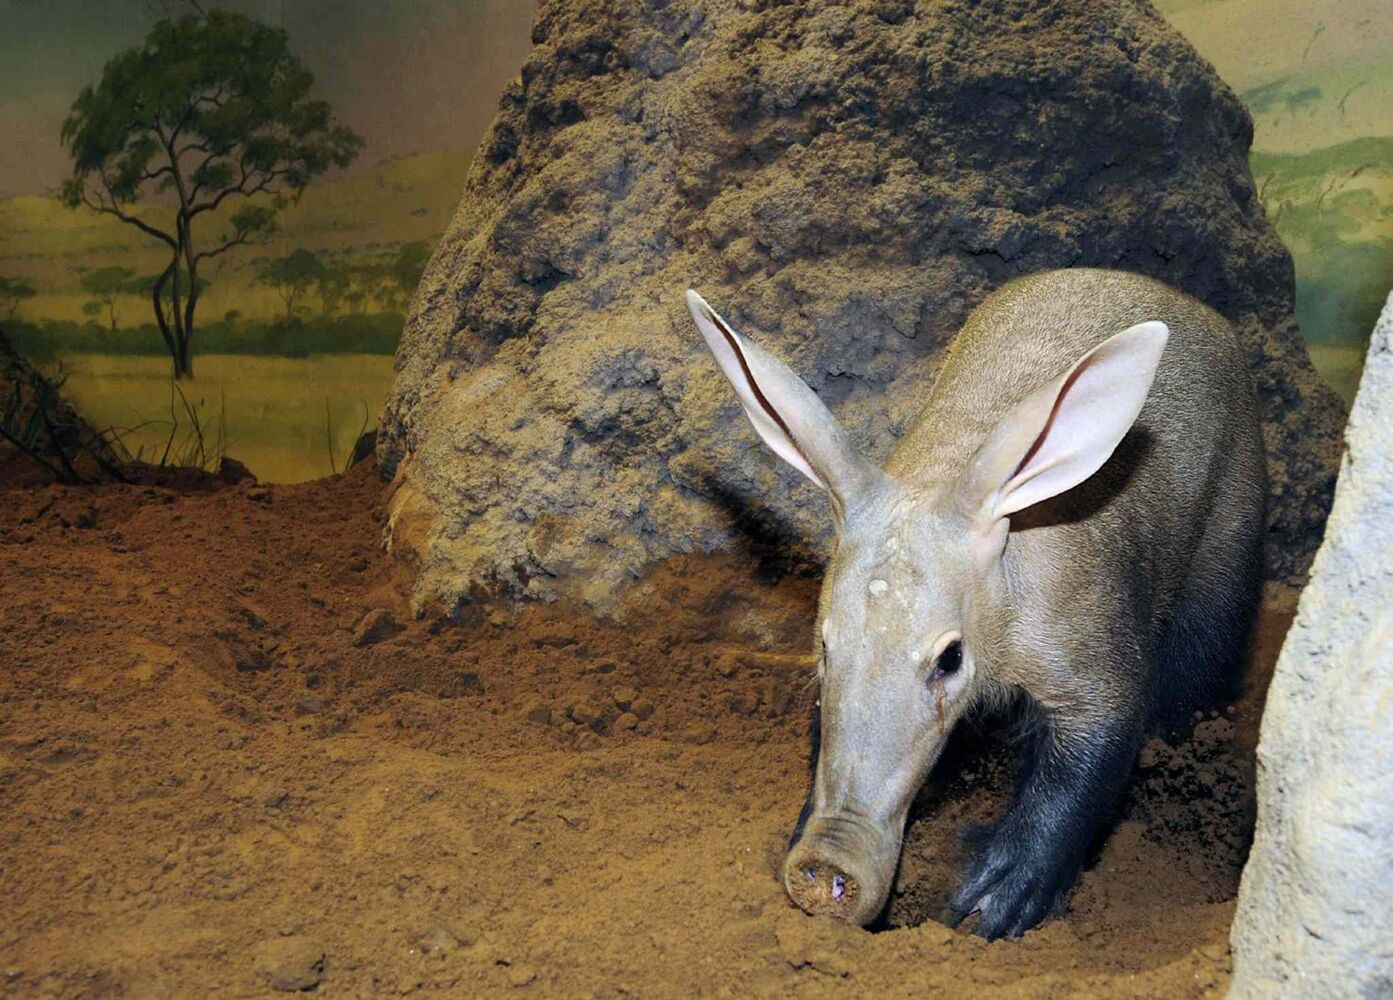 22. Insectivorous mammals, including, but not limited to, aardvark (pictured), tenrec, shrew species, mole species and hedgehog species, except the African pygmy hedgehog. (CP)